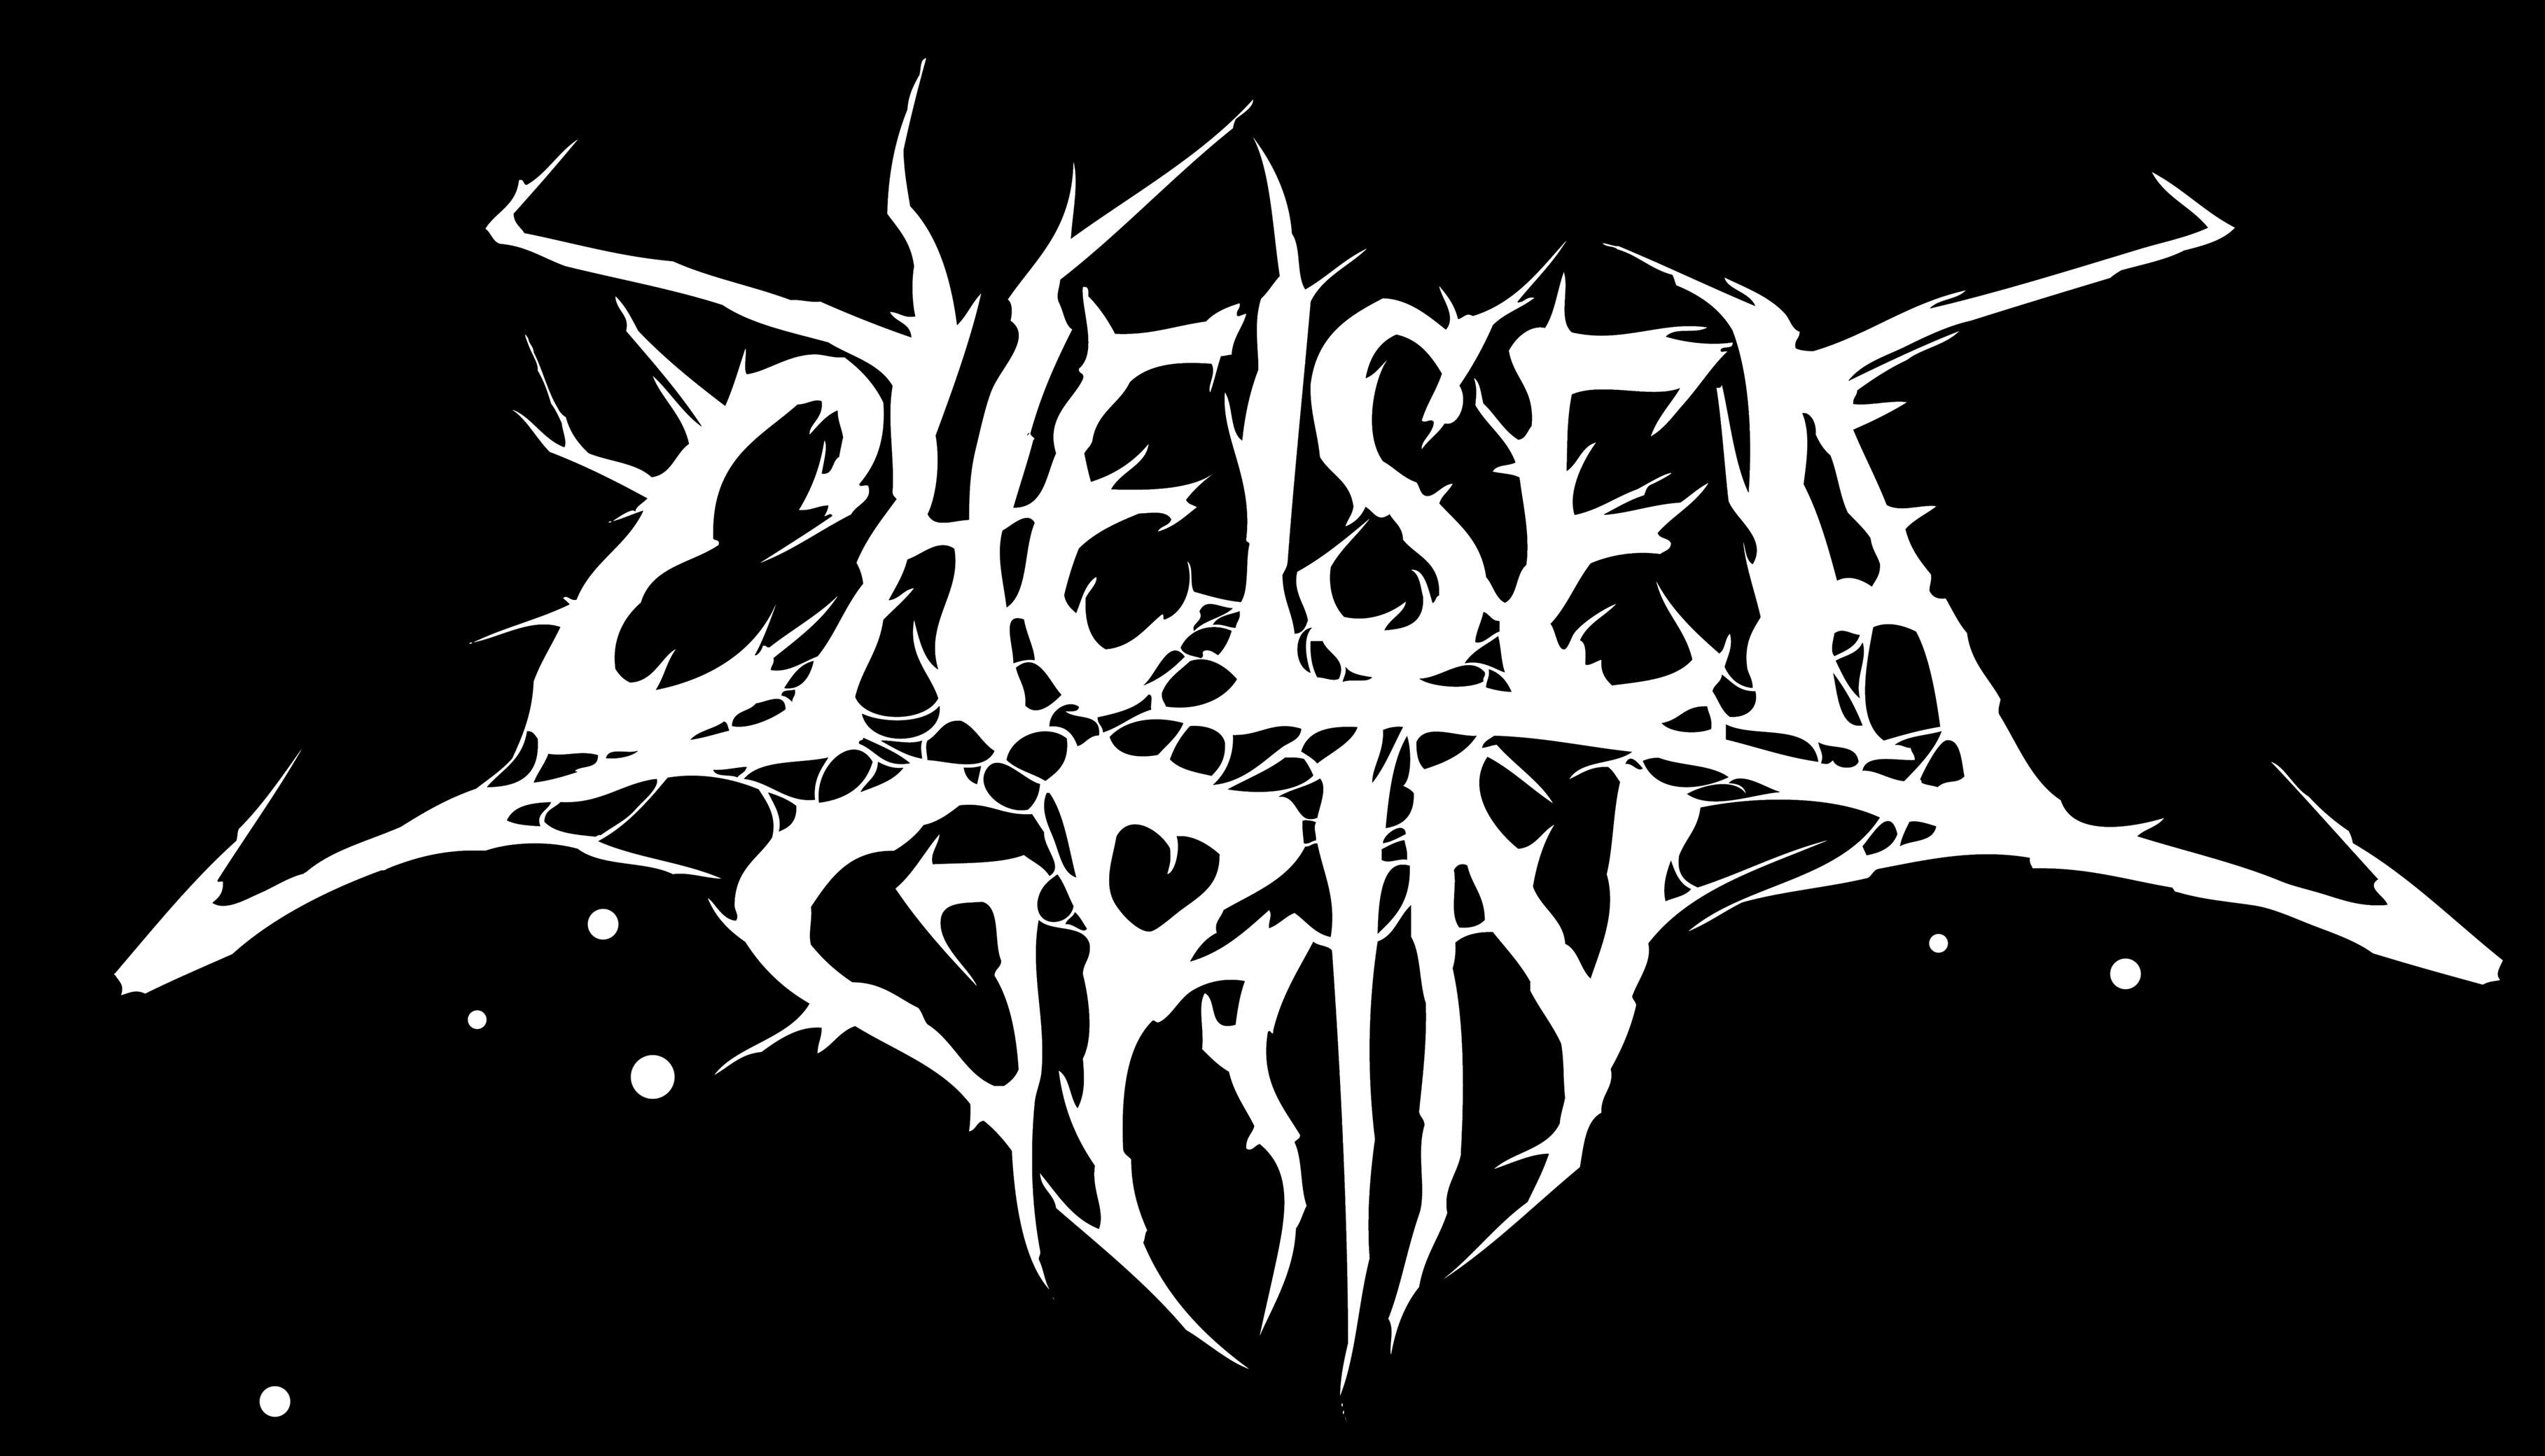 3635x2080 desktop wallpaper for chelsea grin, kB)